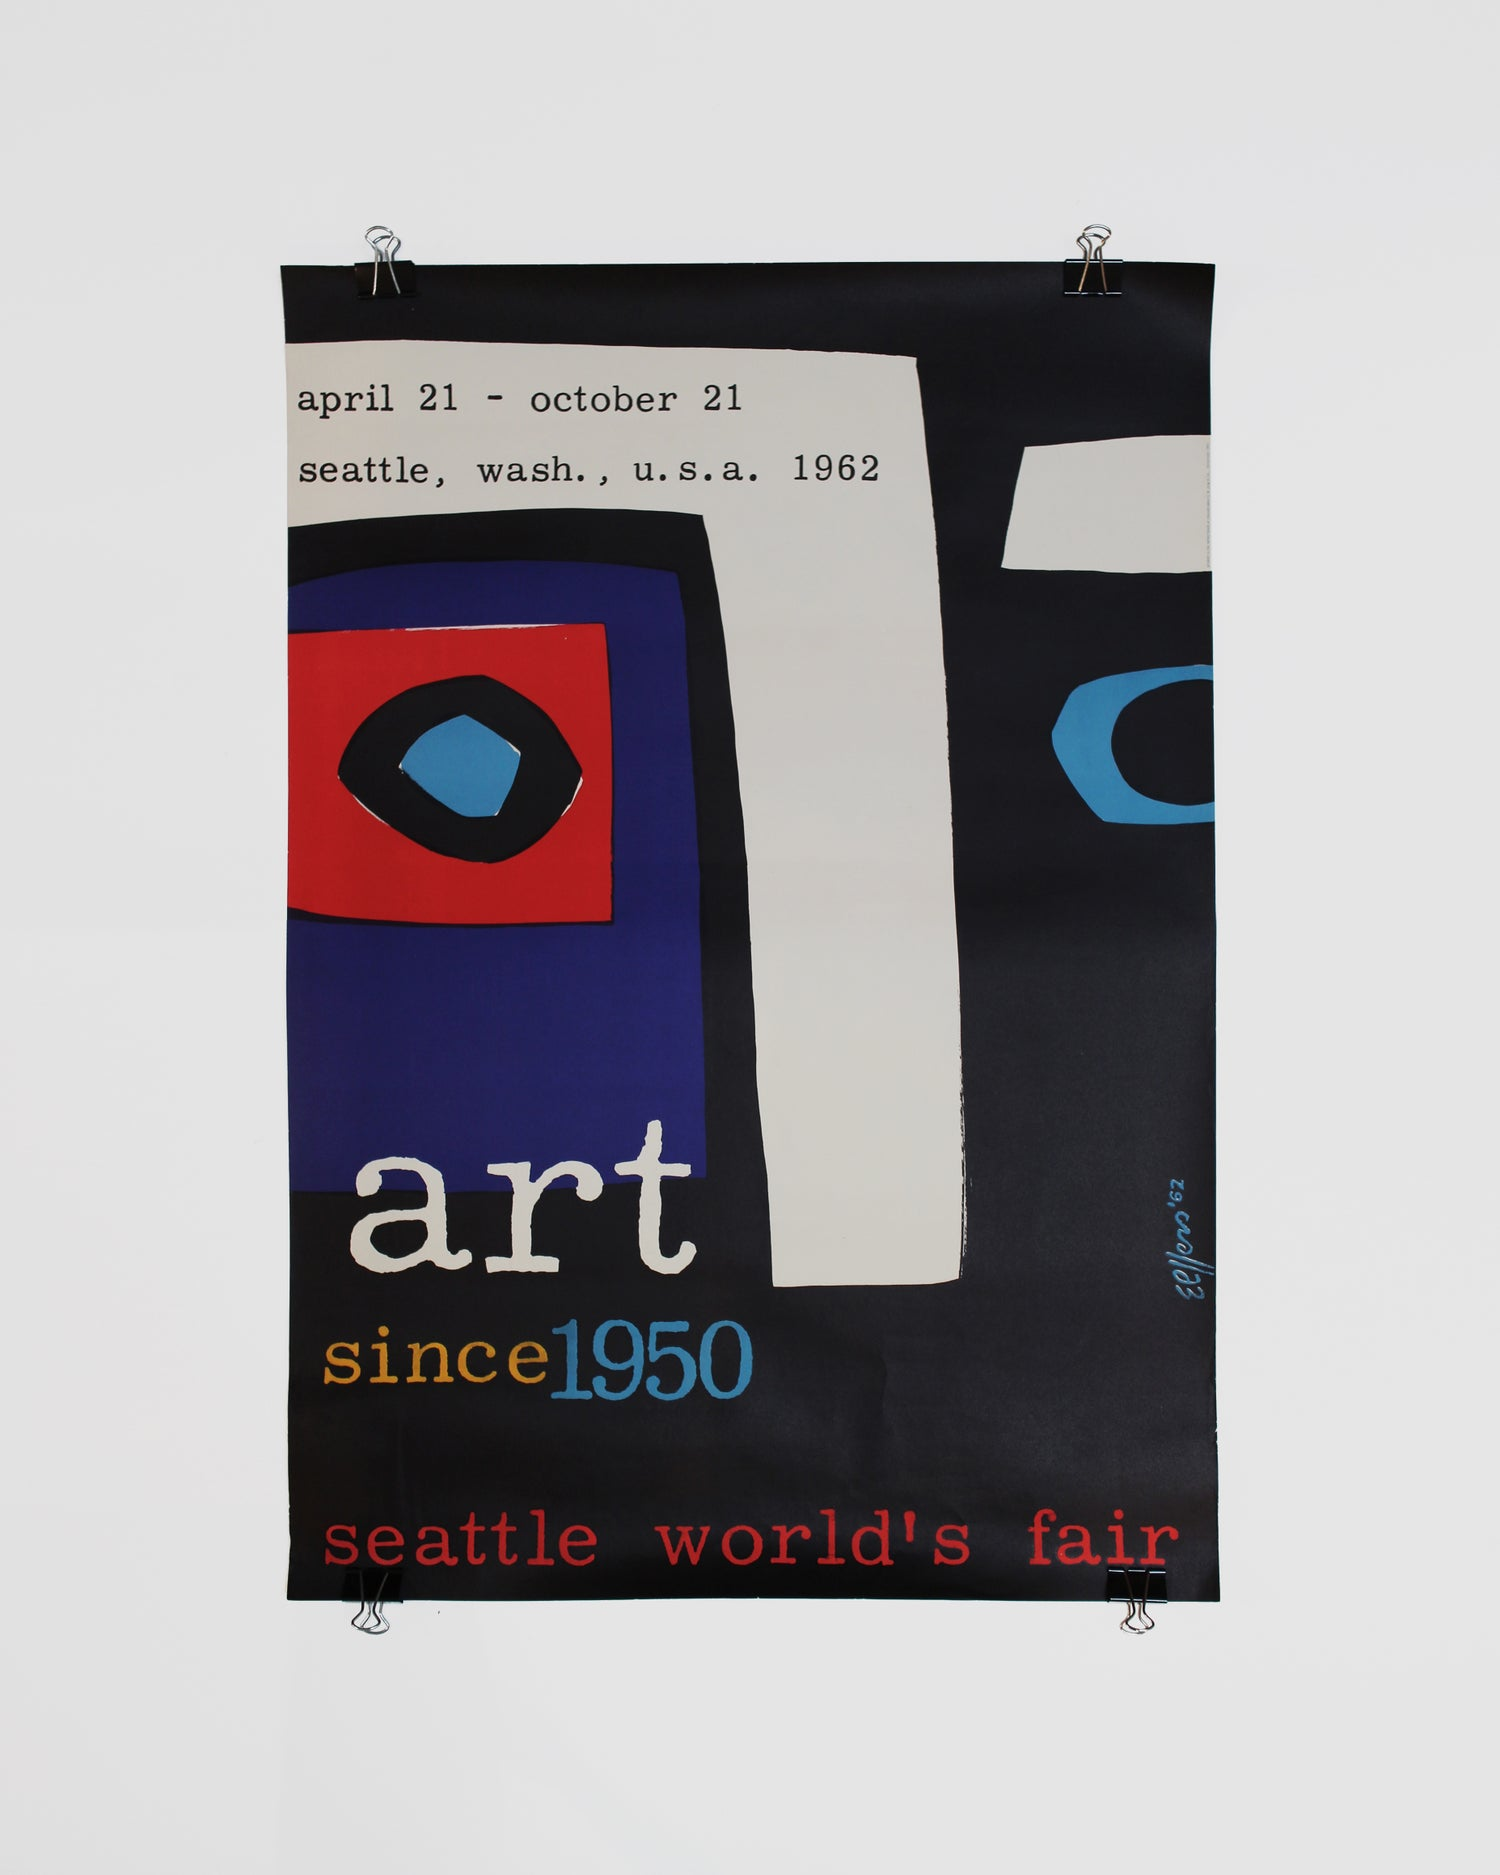 Original Lithograph Art Since 1950 Dick Elffers Seattle World's Fair Century 21 Poster ca. 1962